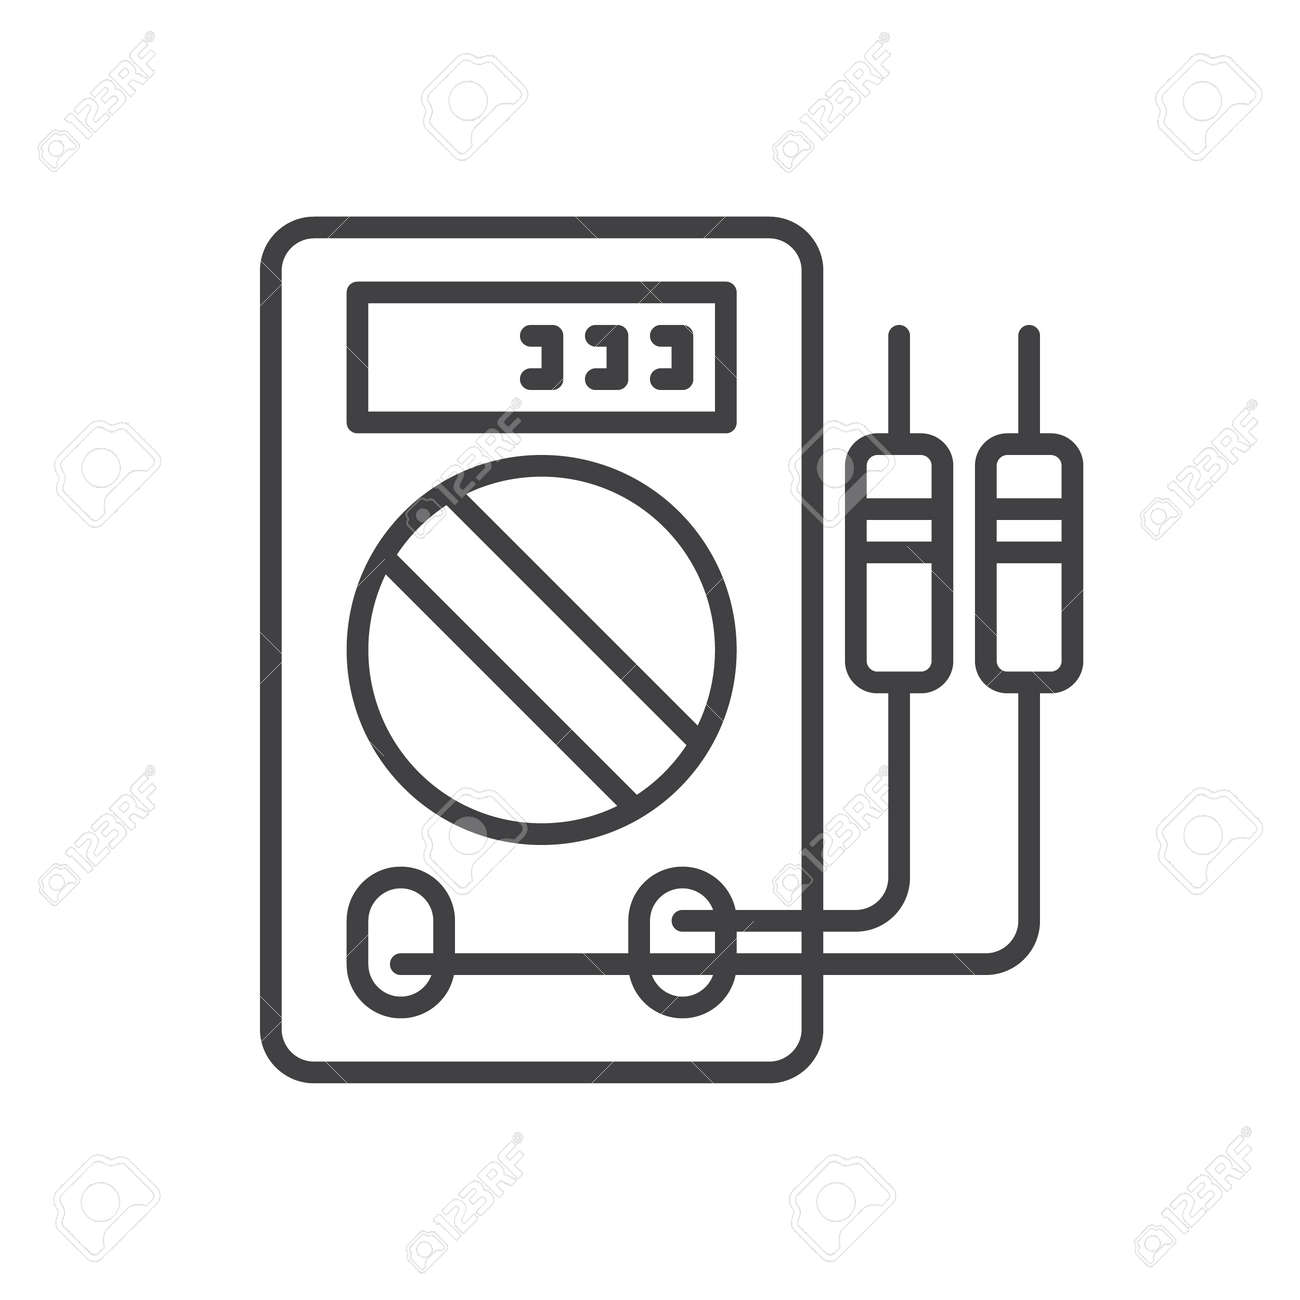 Digital Multimeter Line Icon Outline Vector Sign Linear Style